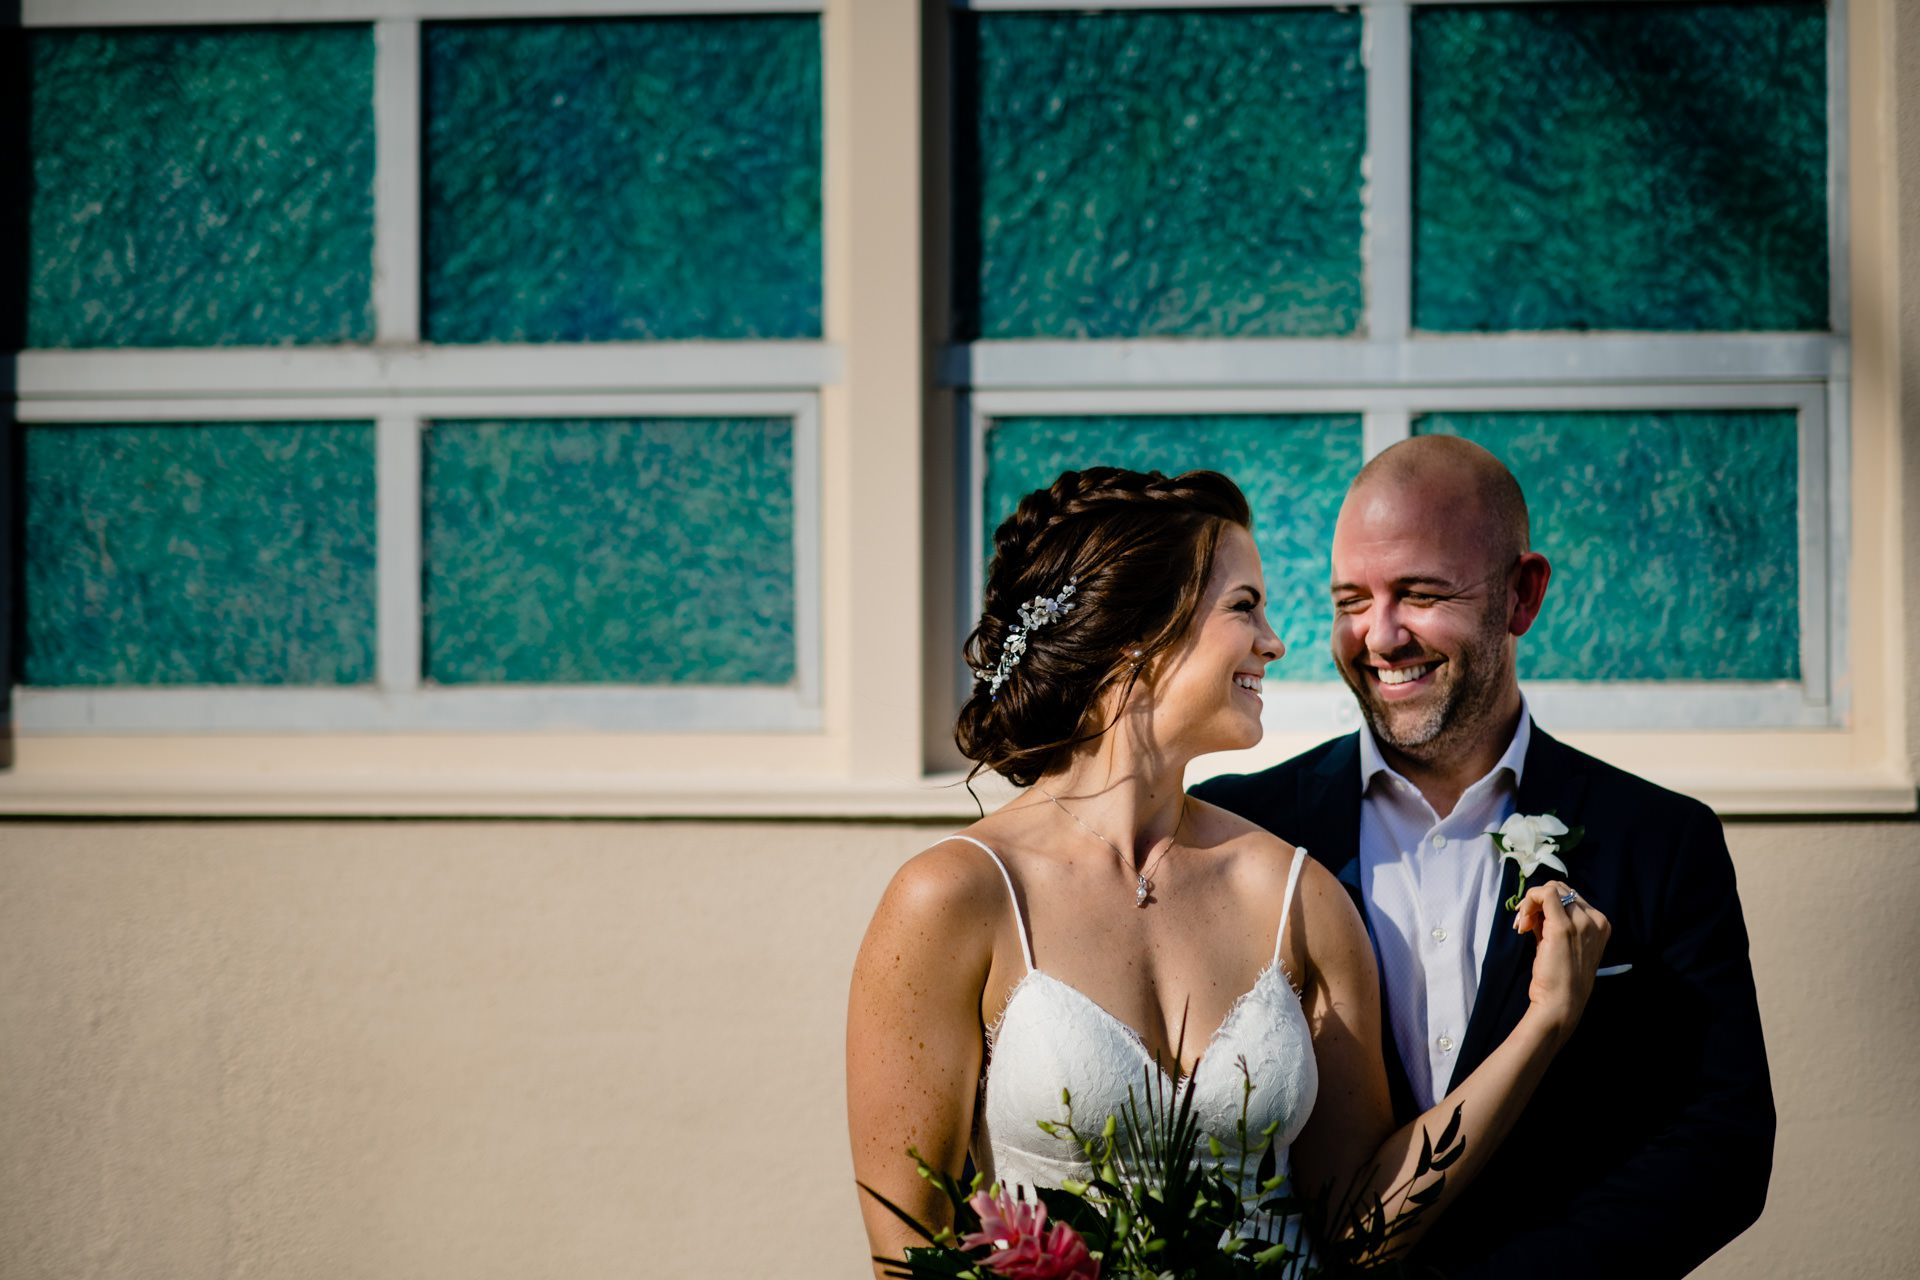 Bride and groom smiling for a photo at old town manor in key west.